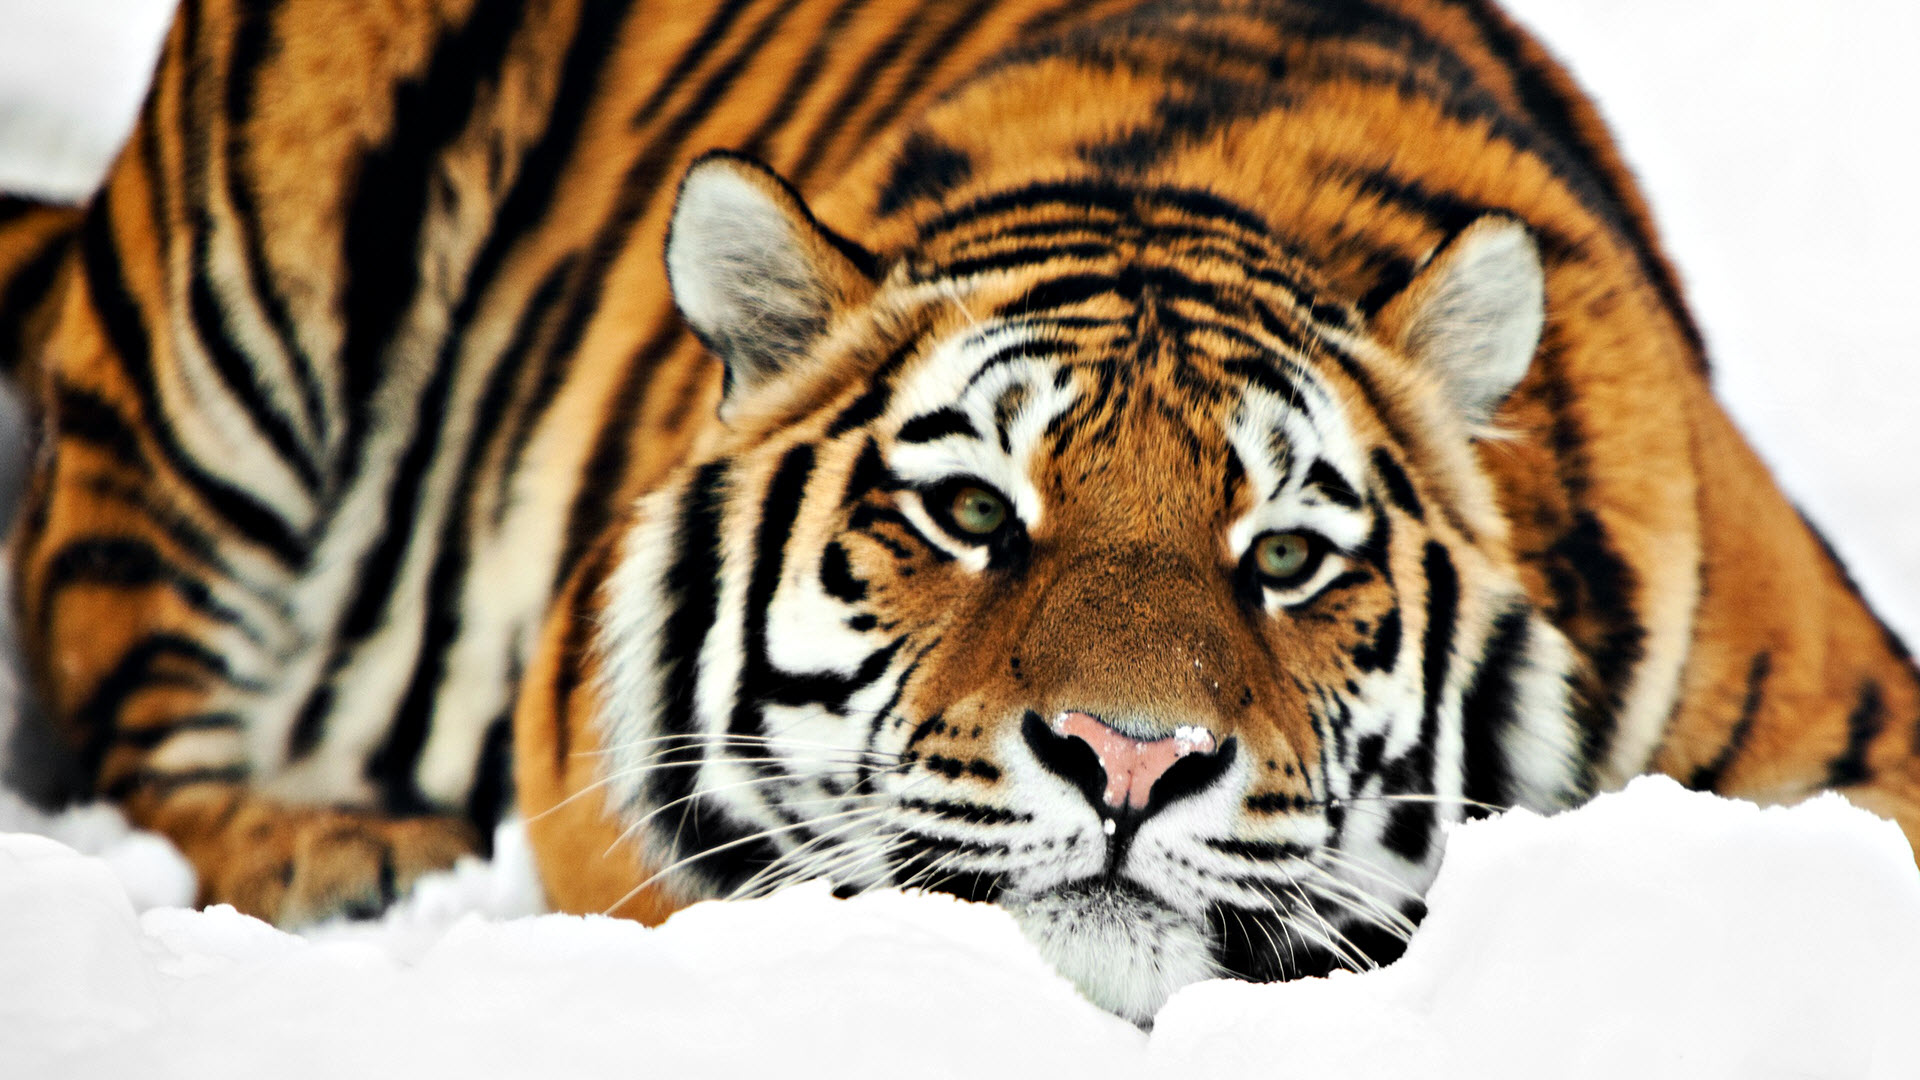 Tiger Wallpaper HD